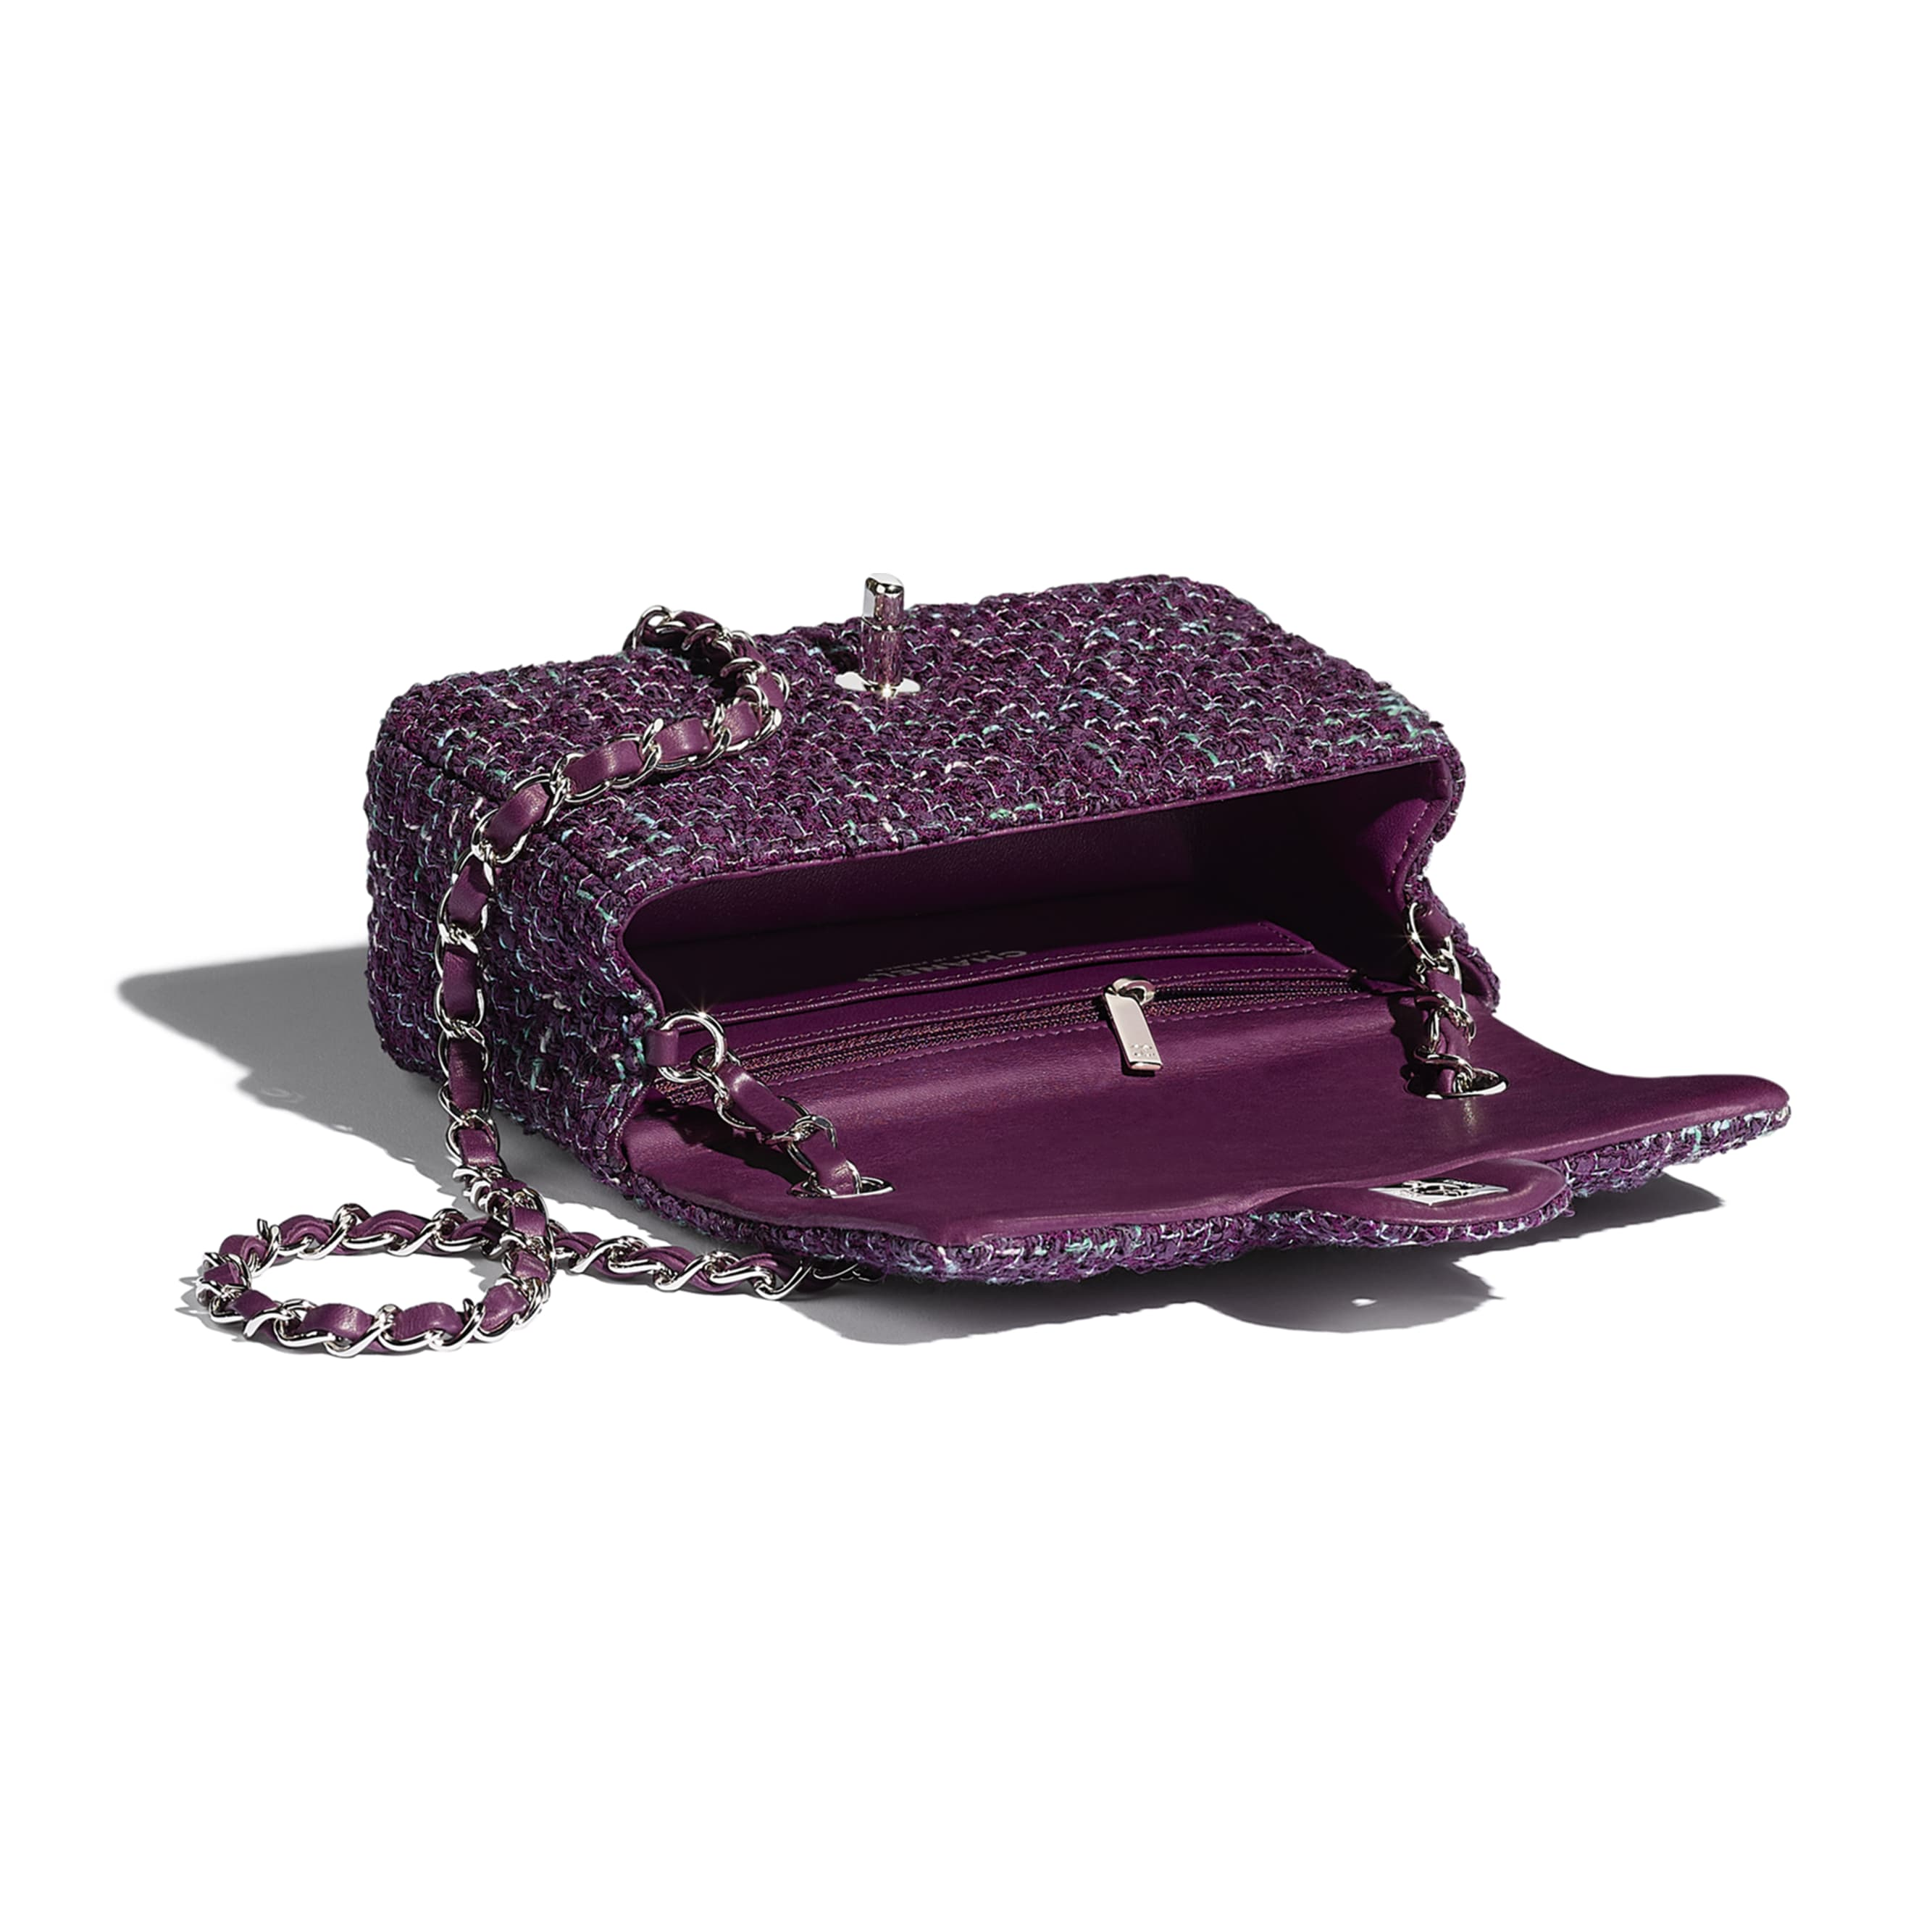 Mini Flap Bag - Purple, Green & Turquoise - Tweed & Silver-Tone Metal - CHANEL - Other view - see standard sized version